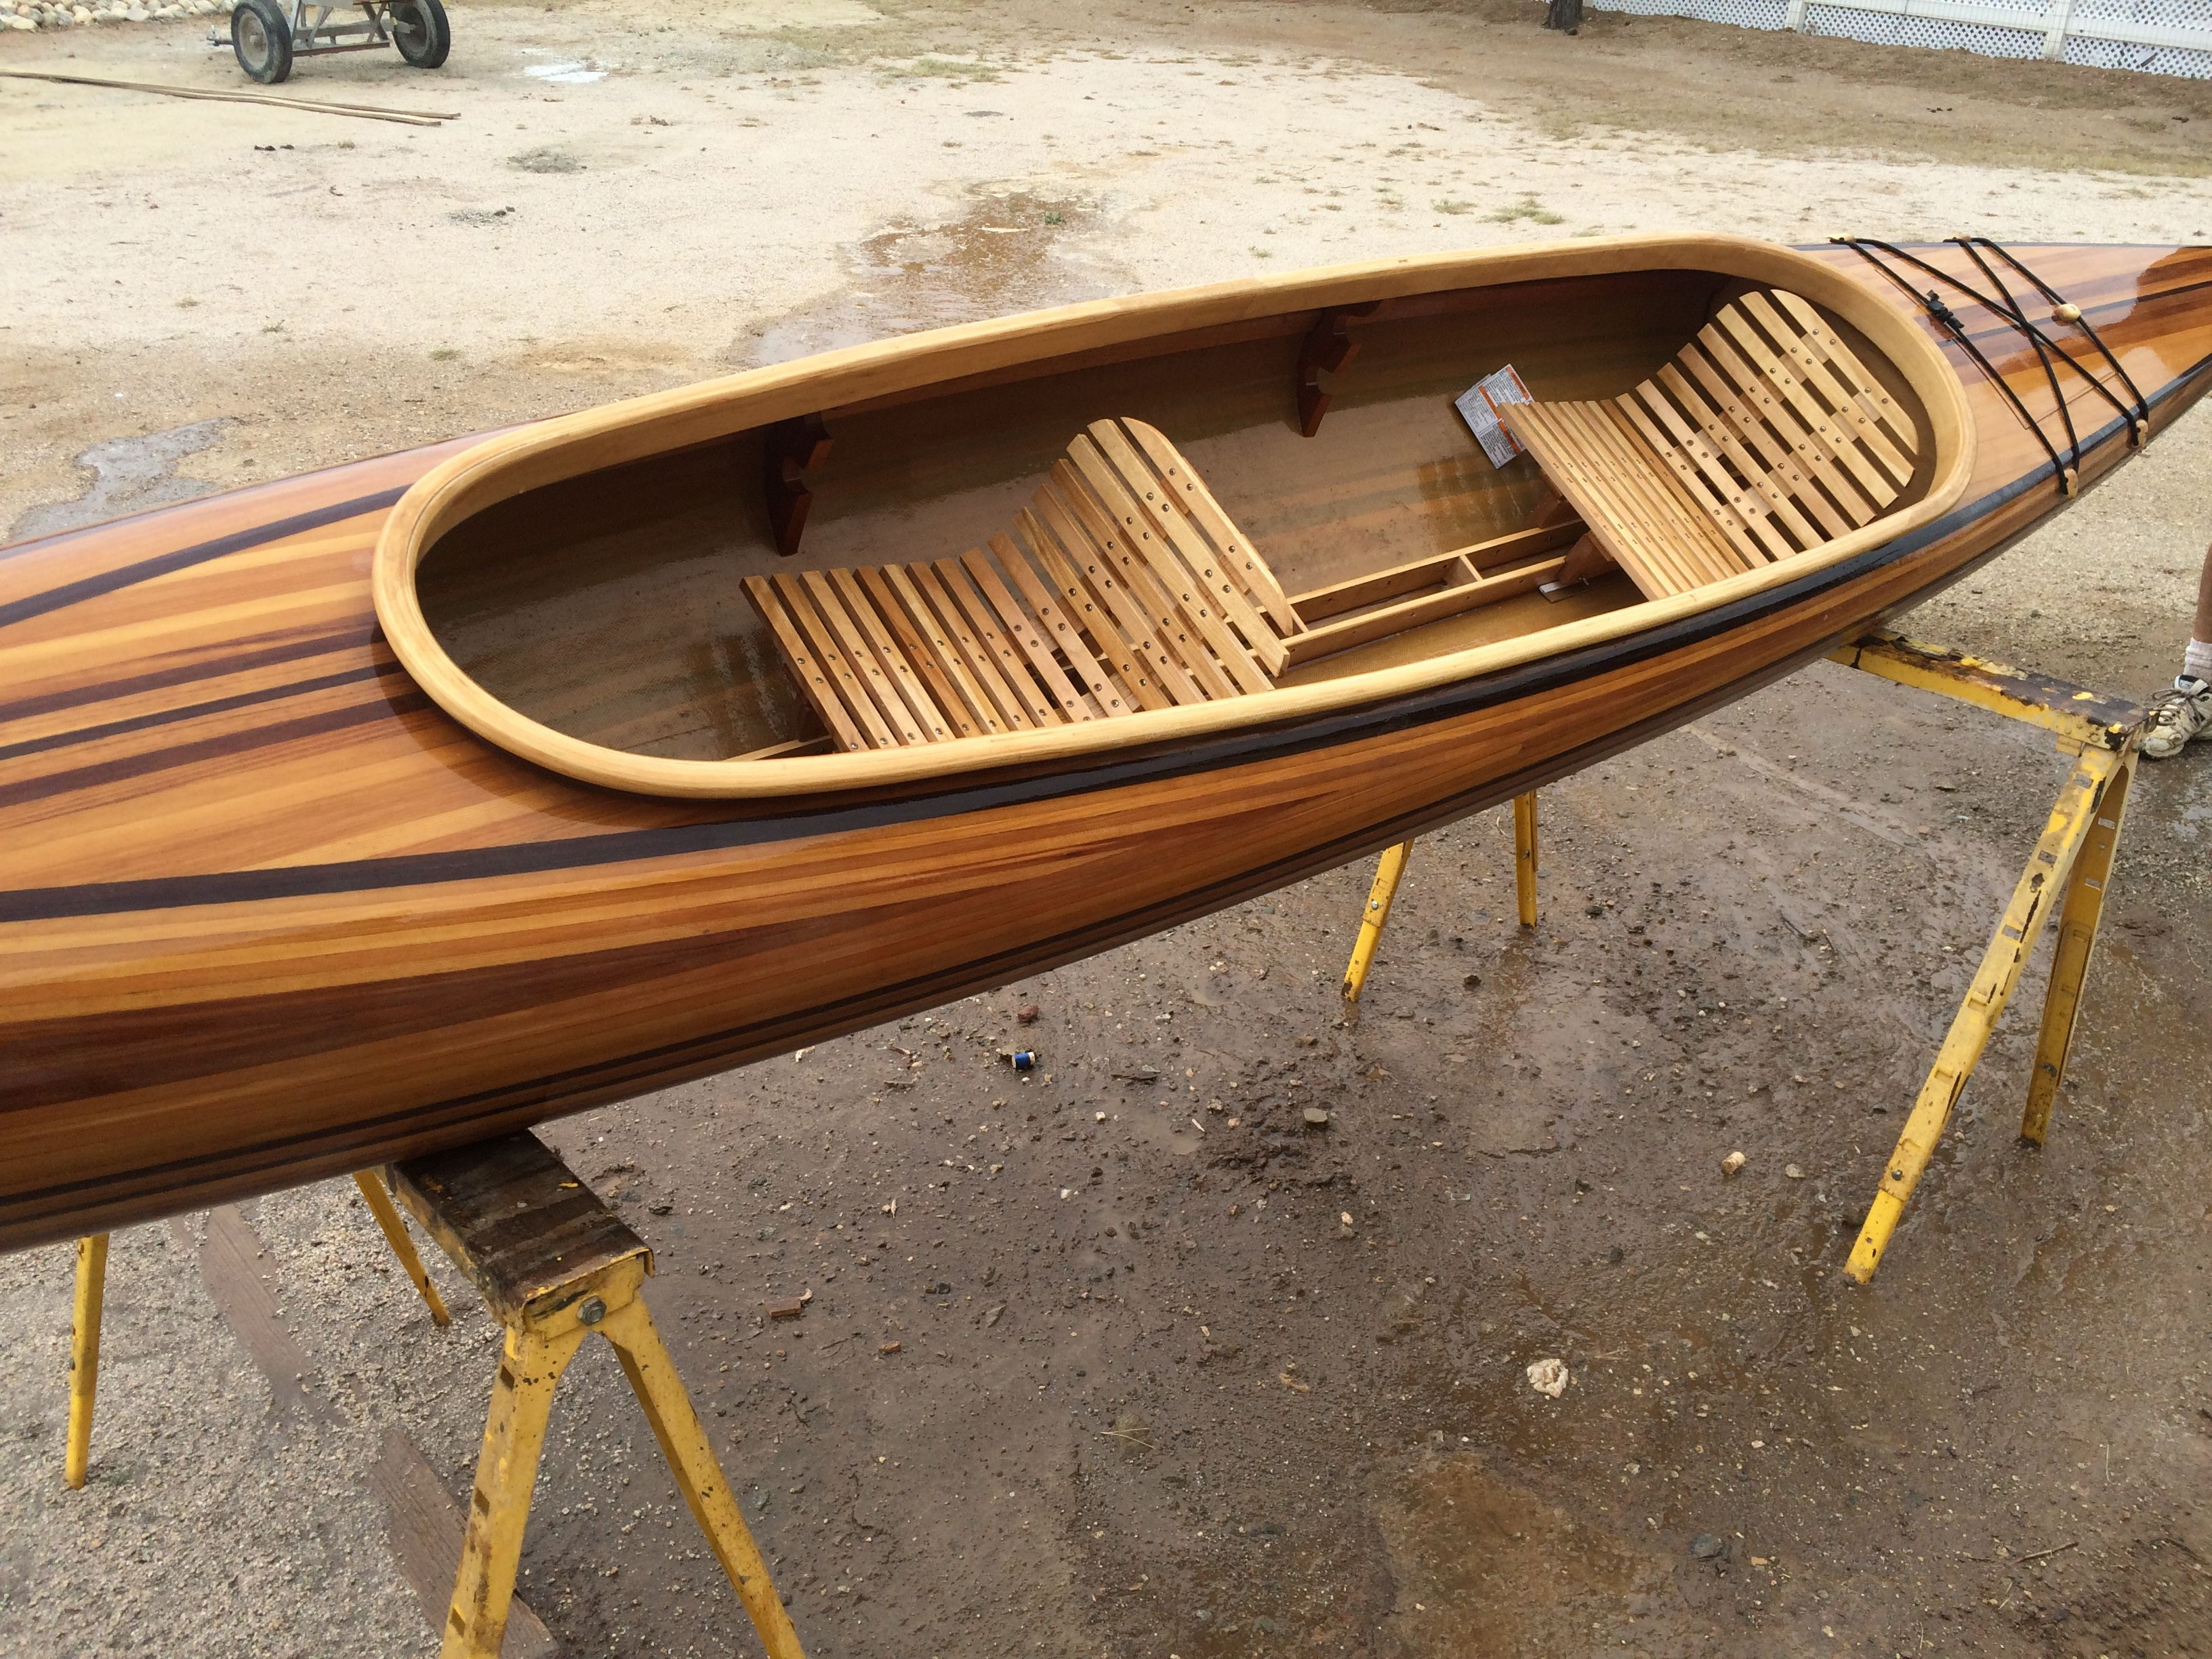 Two person enclosed Kayak For Sale   My Custom Wood Works in 2019